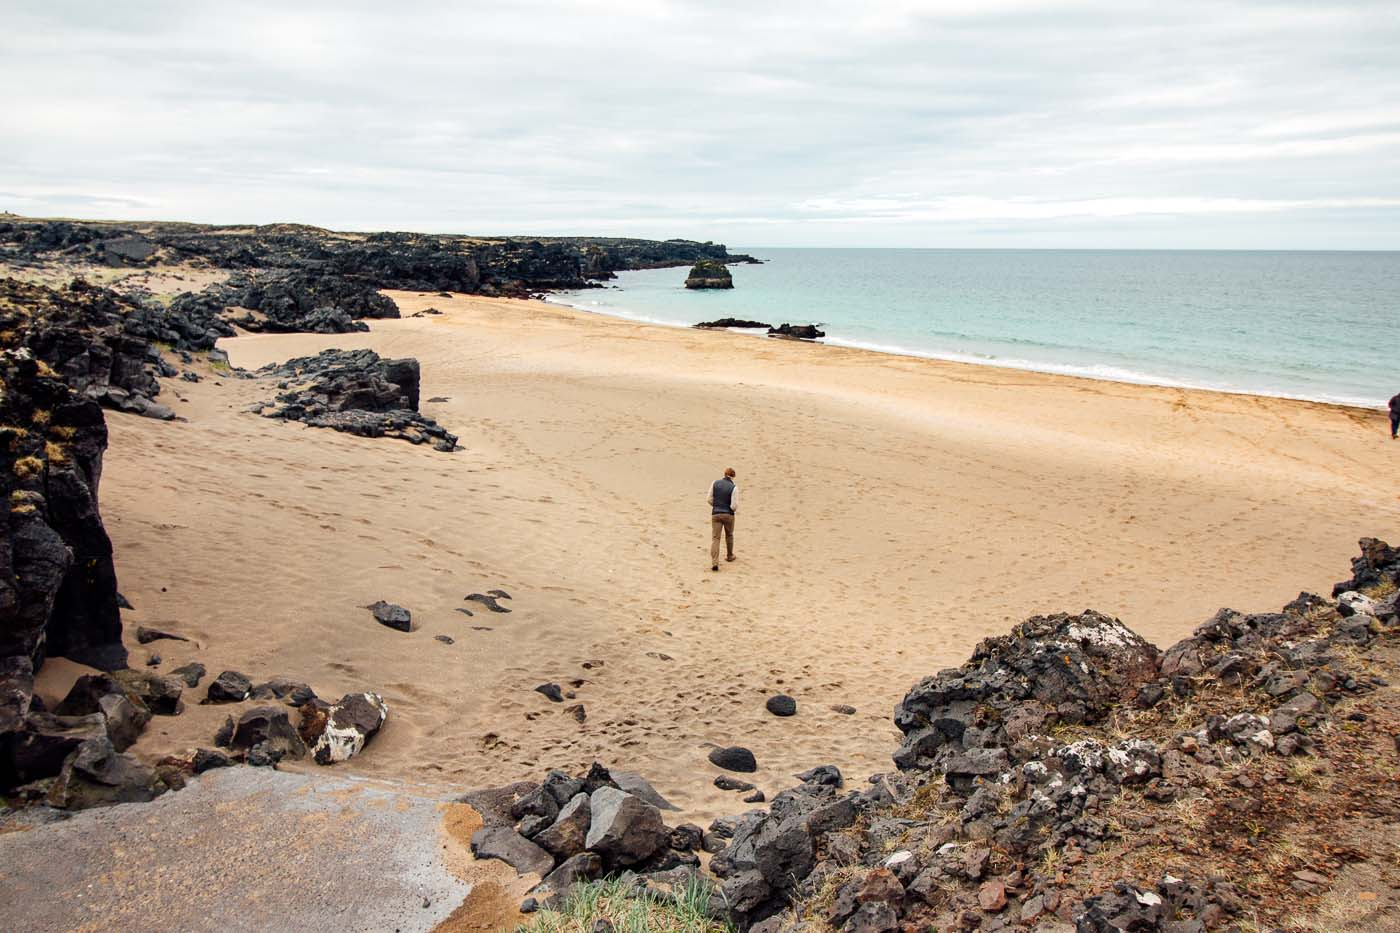 A man walking across a gold sand beach on Iceland's Snaefellsnes Peninsula